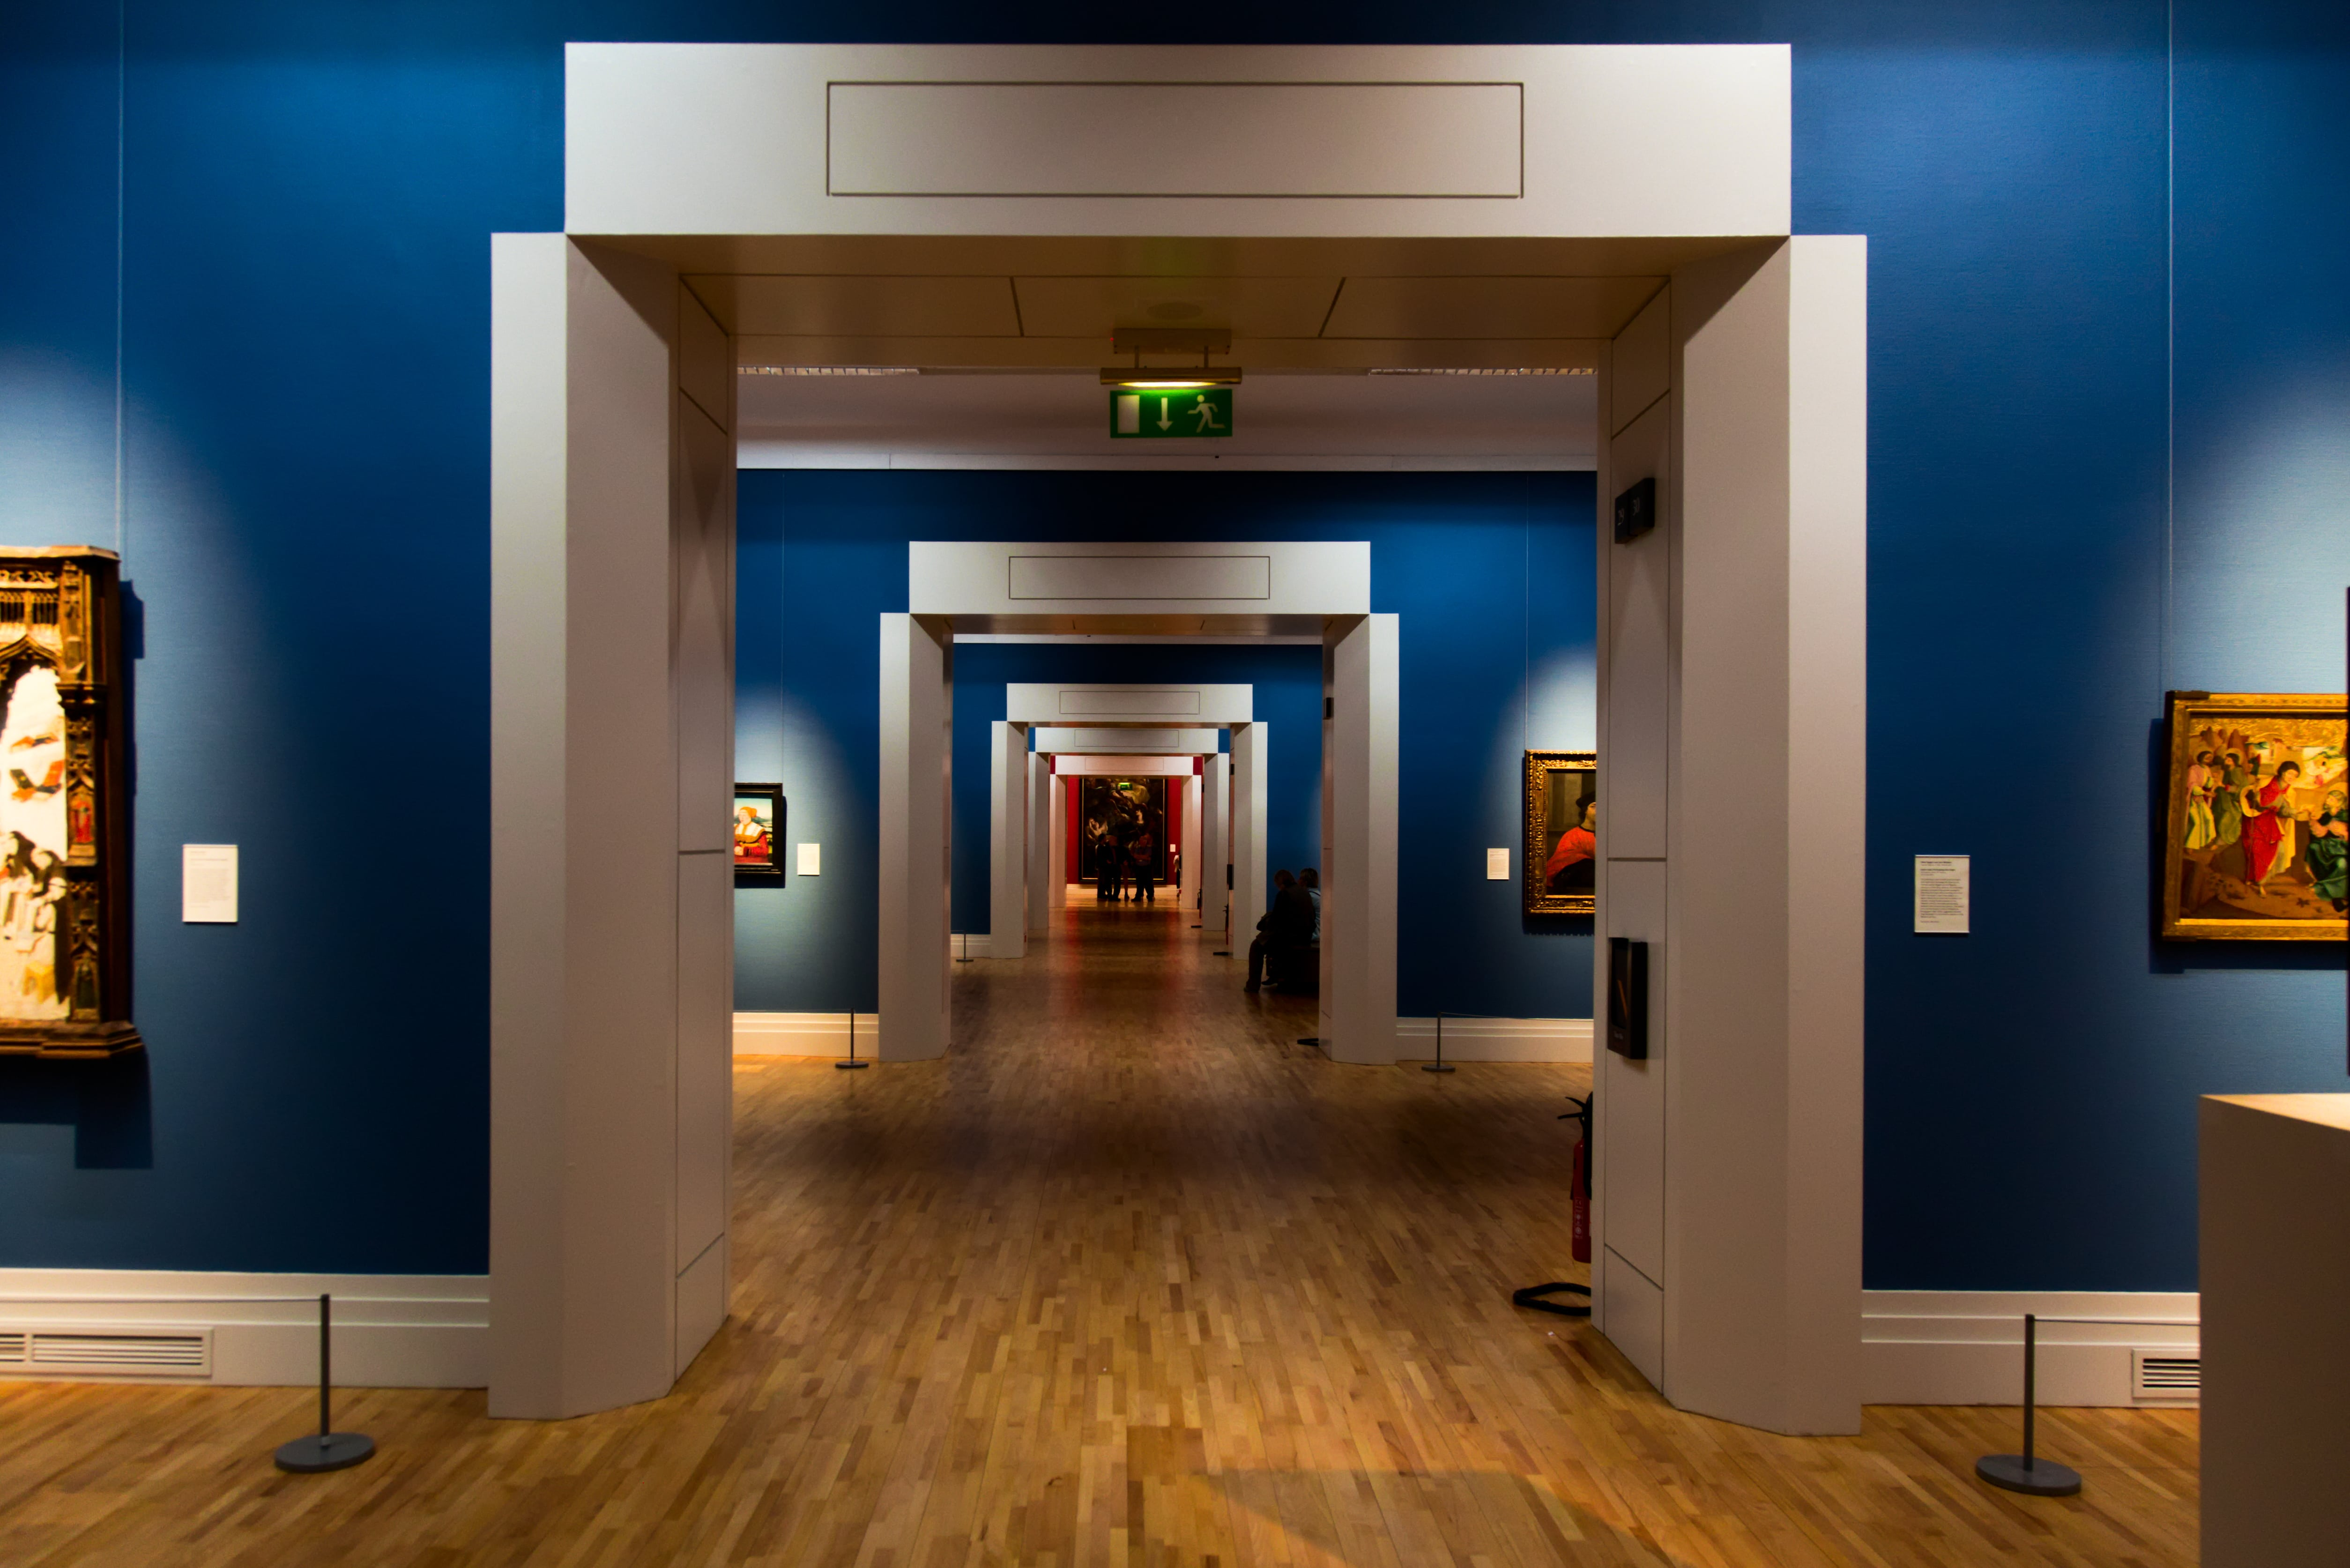 The National Gallery of Ireland is a great place to visit in Ireland for Irish and European art